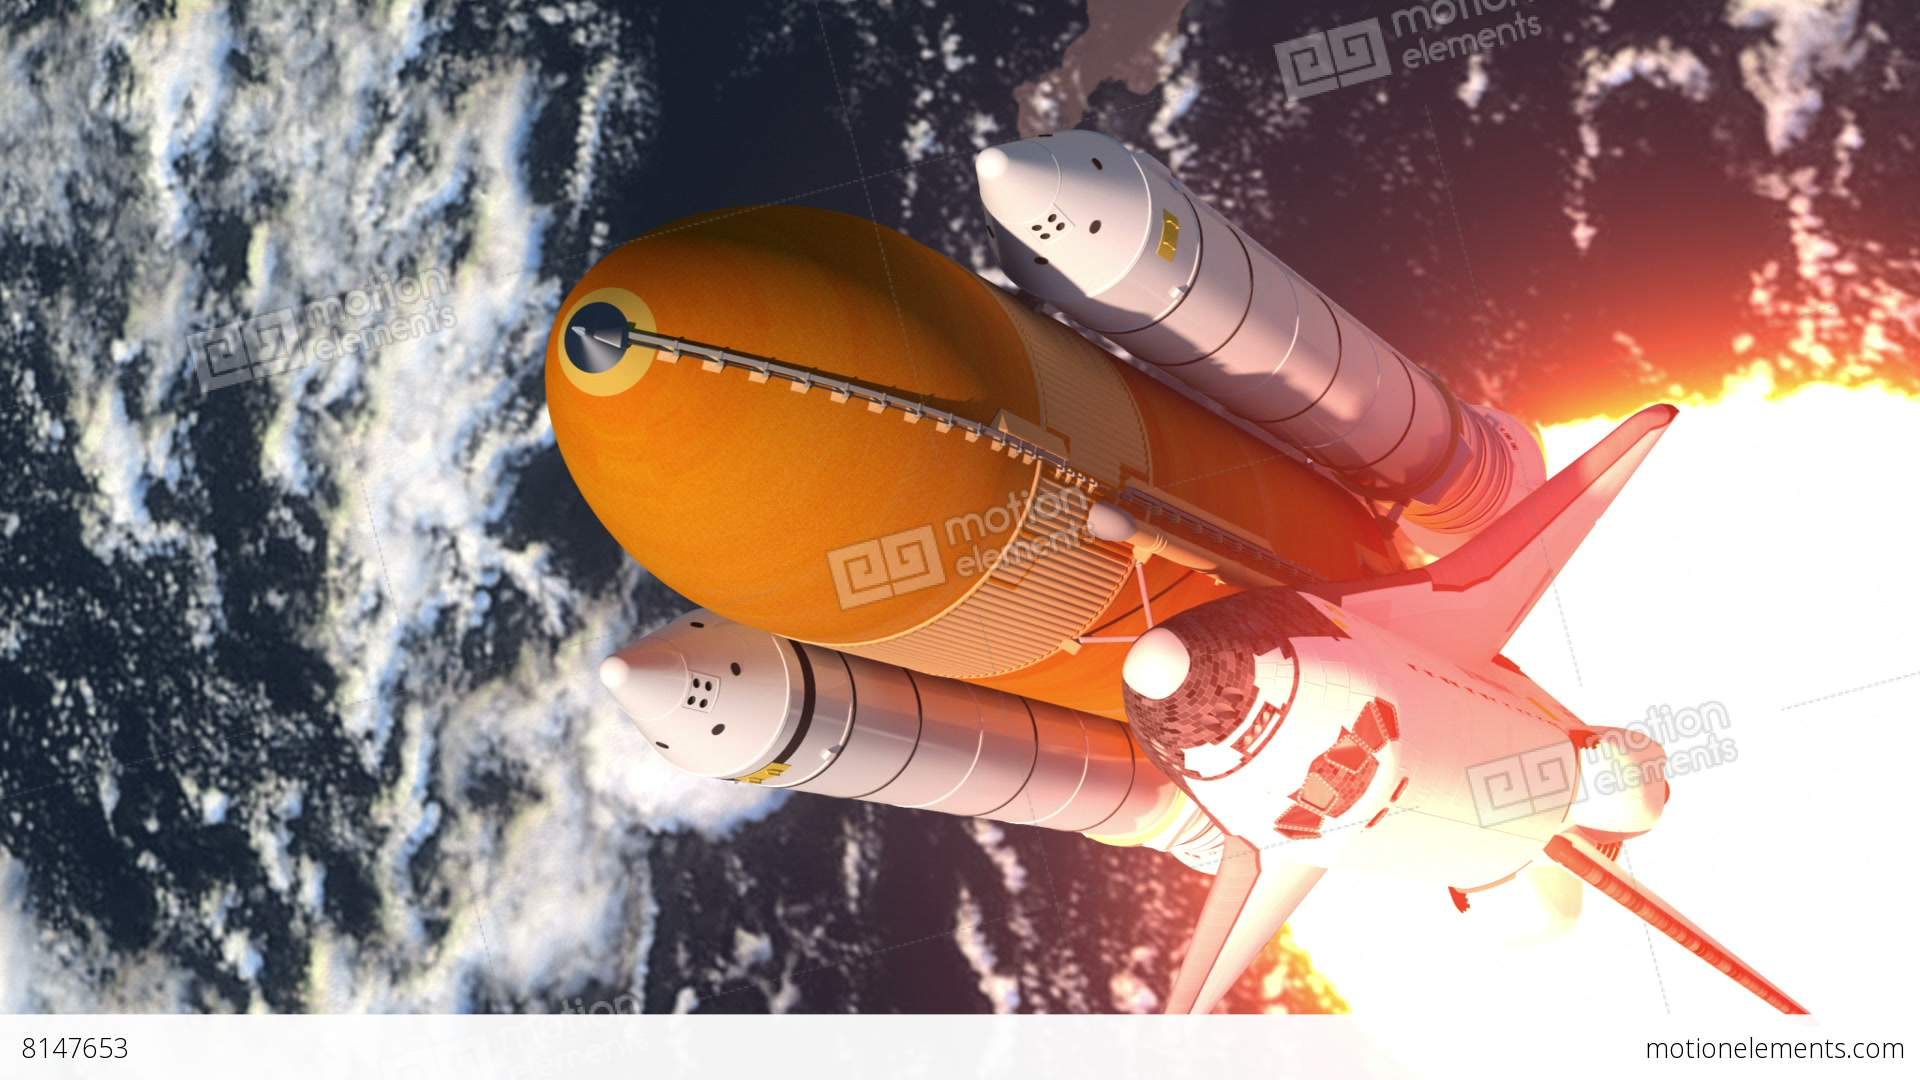 space shuttle animation - photo #26